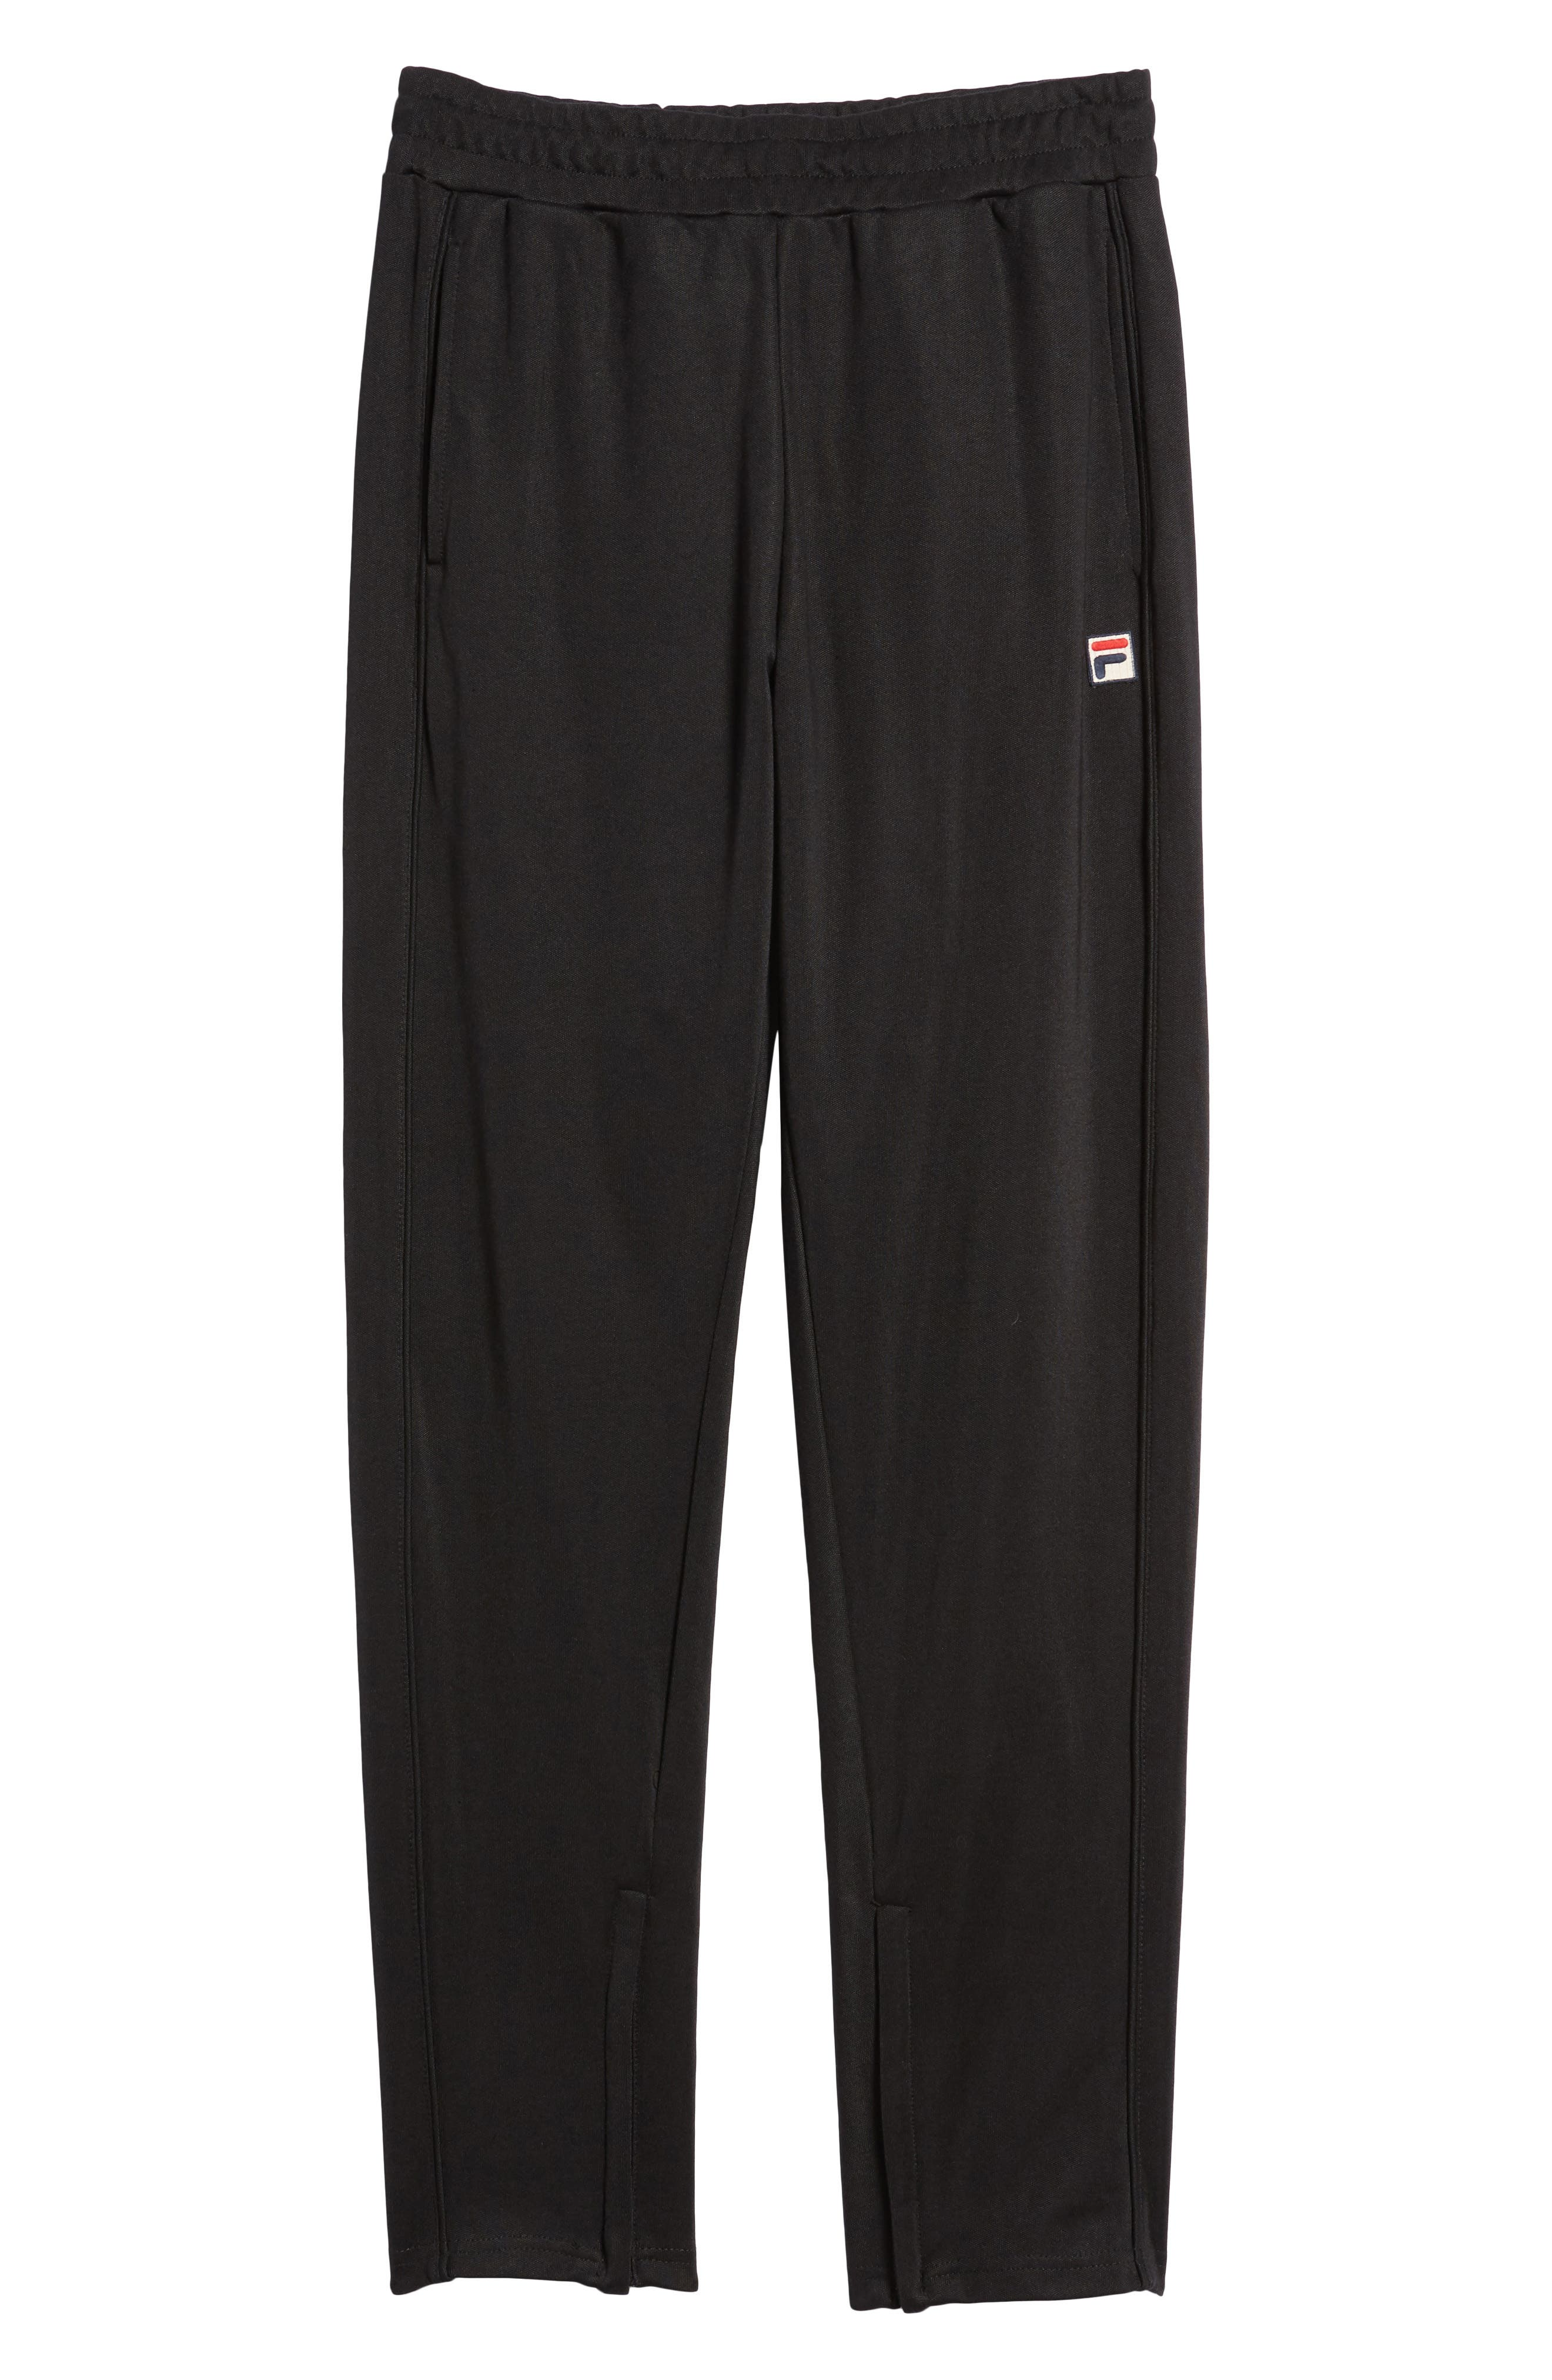 Bianchi Pants,                             Alternate thumbnail 6, color,                             Black